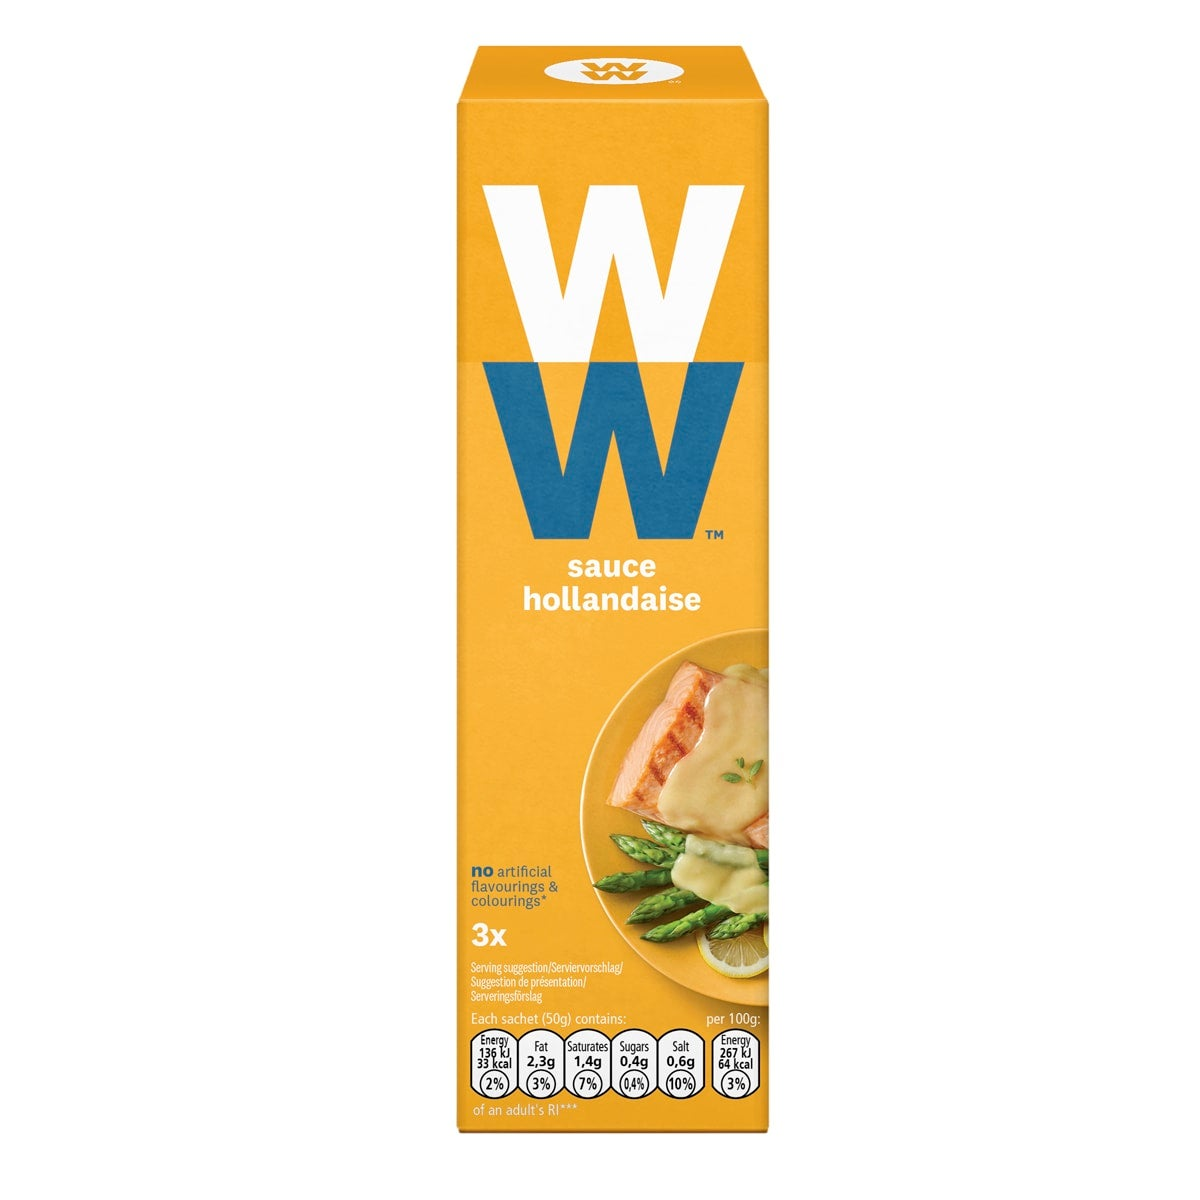 Box of 3 sachets of WW Hollandaise Sauce, simply microwave to add instant flavour to your food, instant flavor booster, silky smooth, suitable for vegetarians